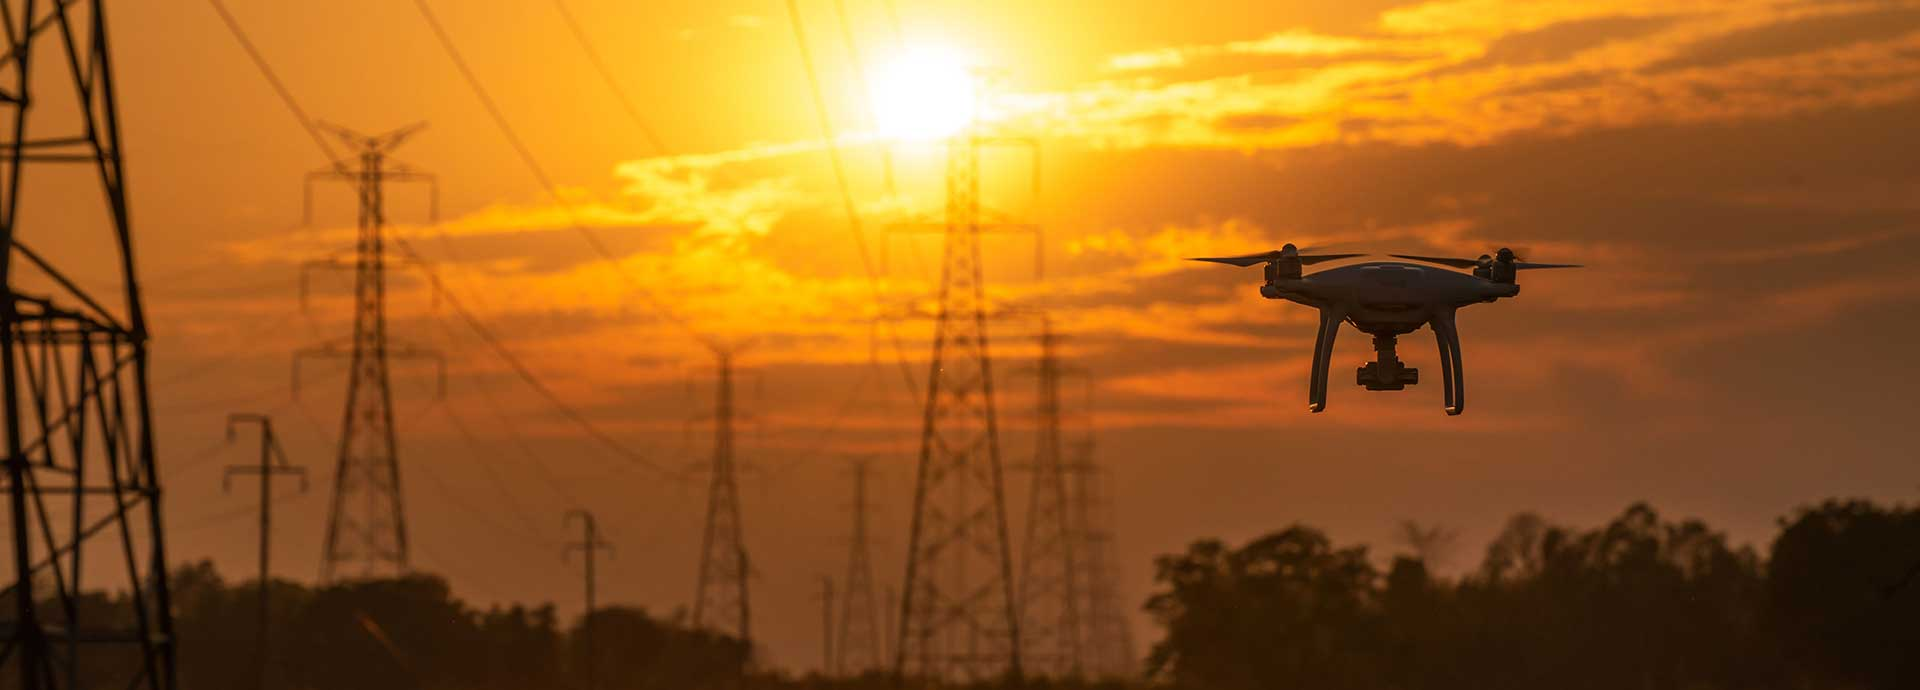 Eye in the sky Drones for more efficient power plant deliveries